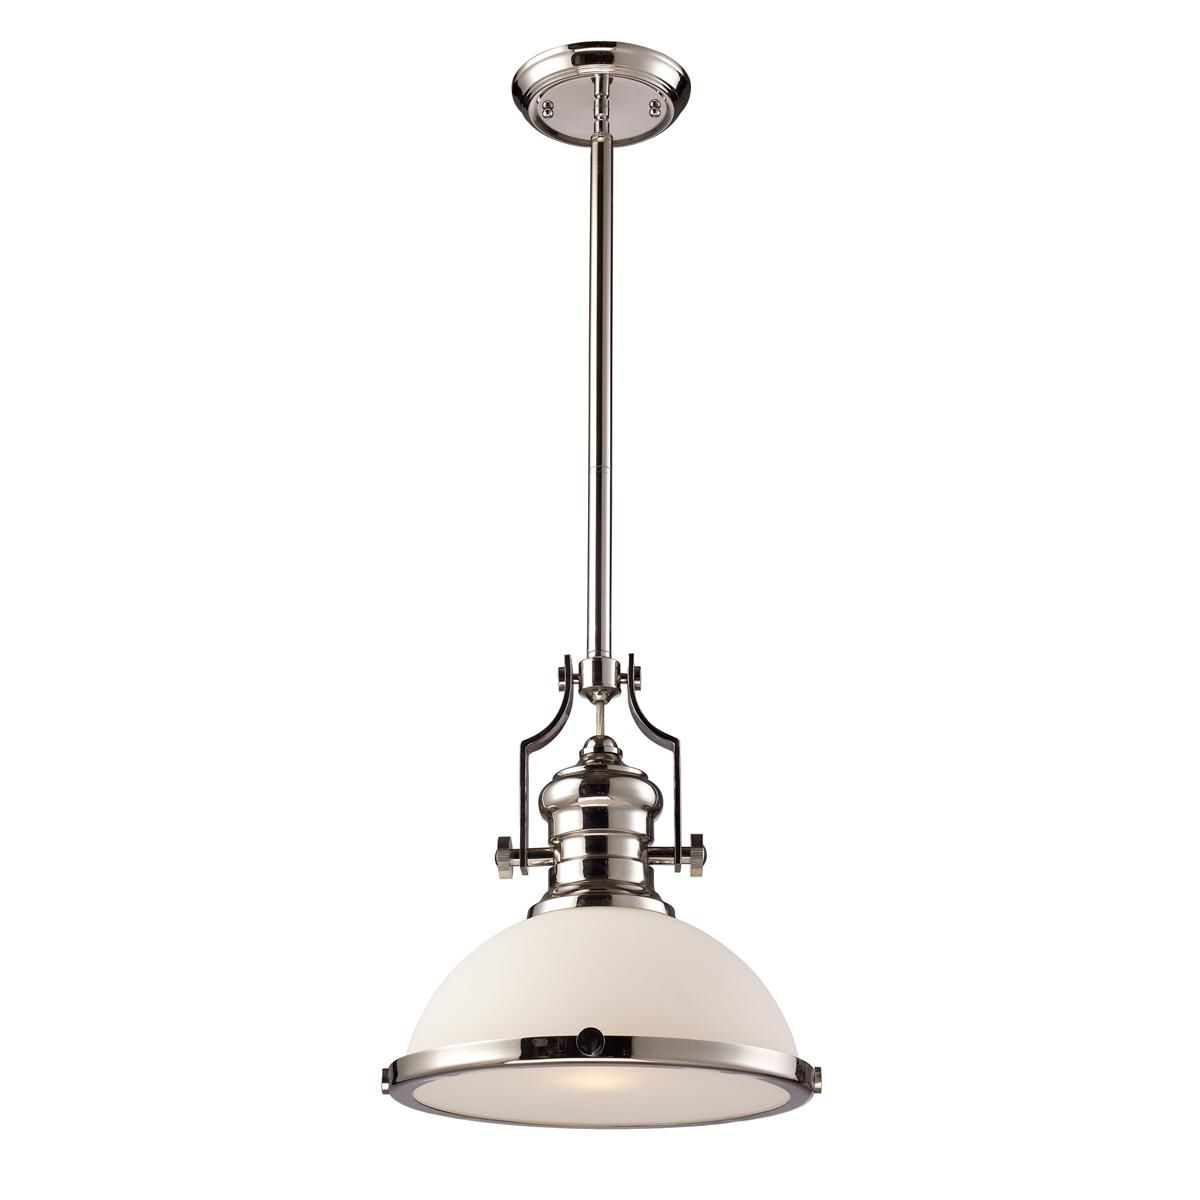 Macon 1 Light Single Dome Pendants Pertaining To Well Known Craftsman Period Pendant – Glass Shade (View 12 of 25)